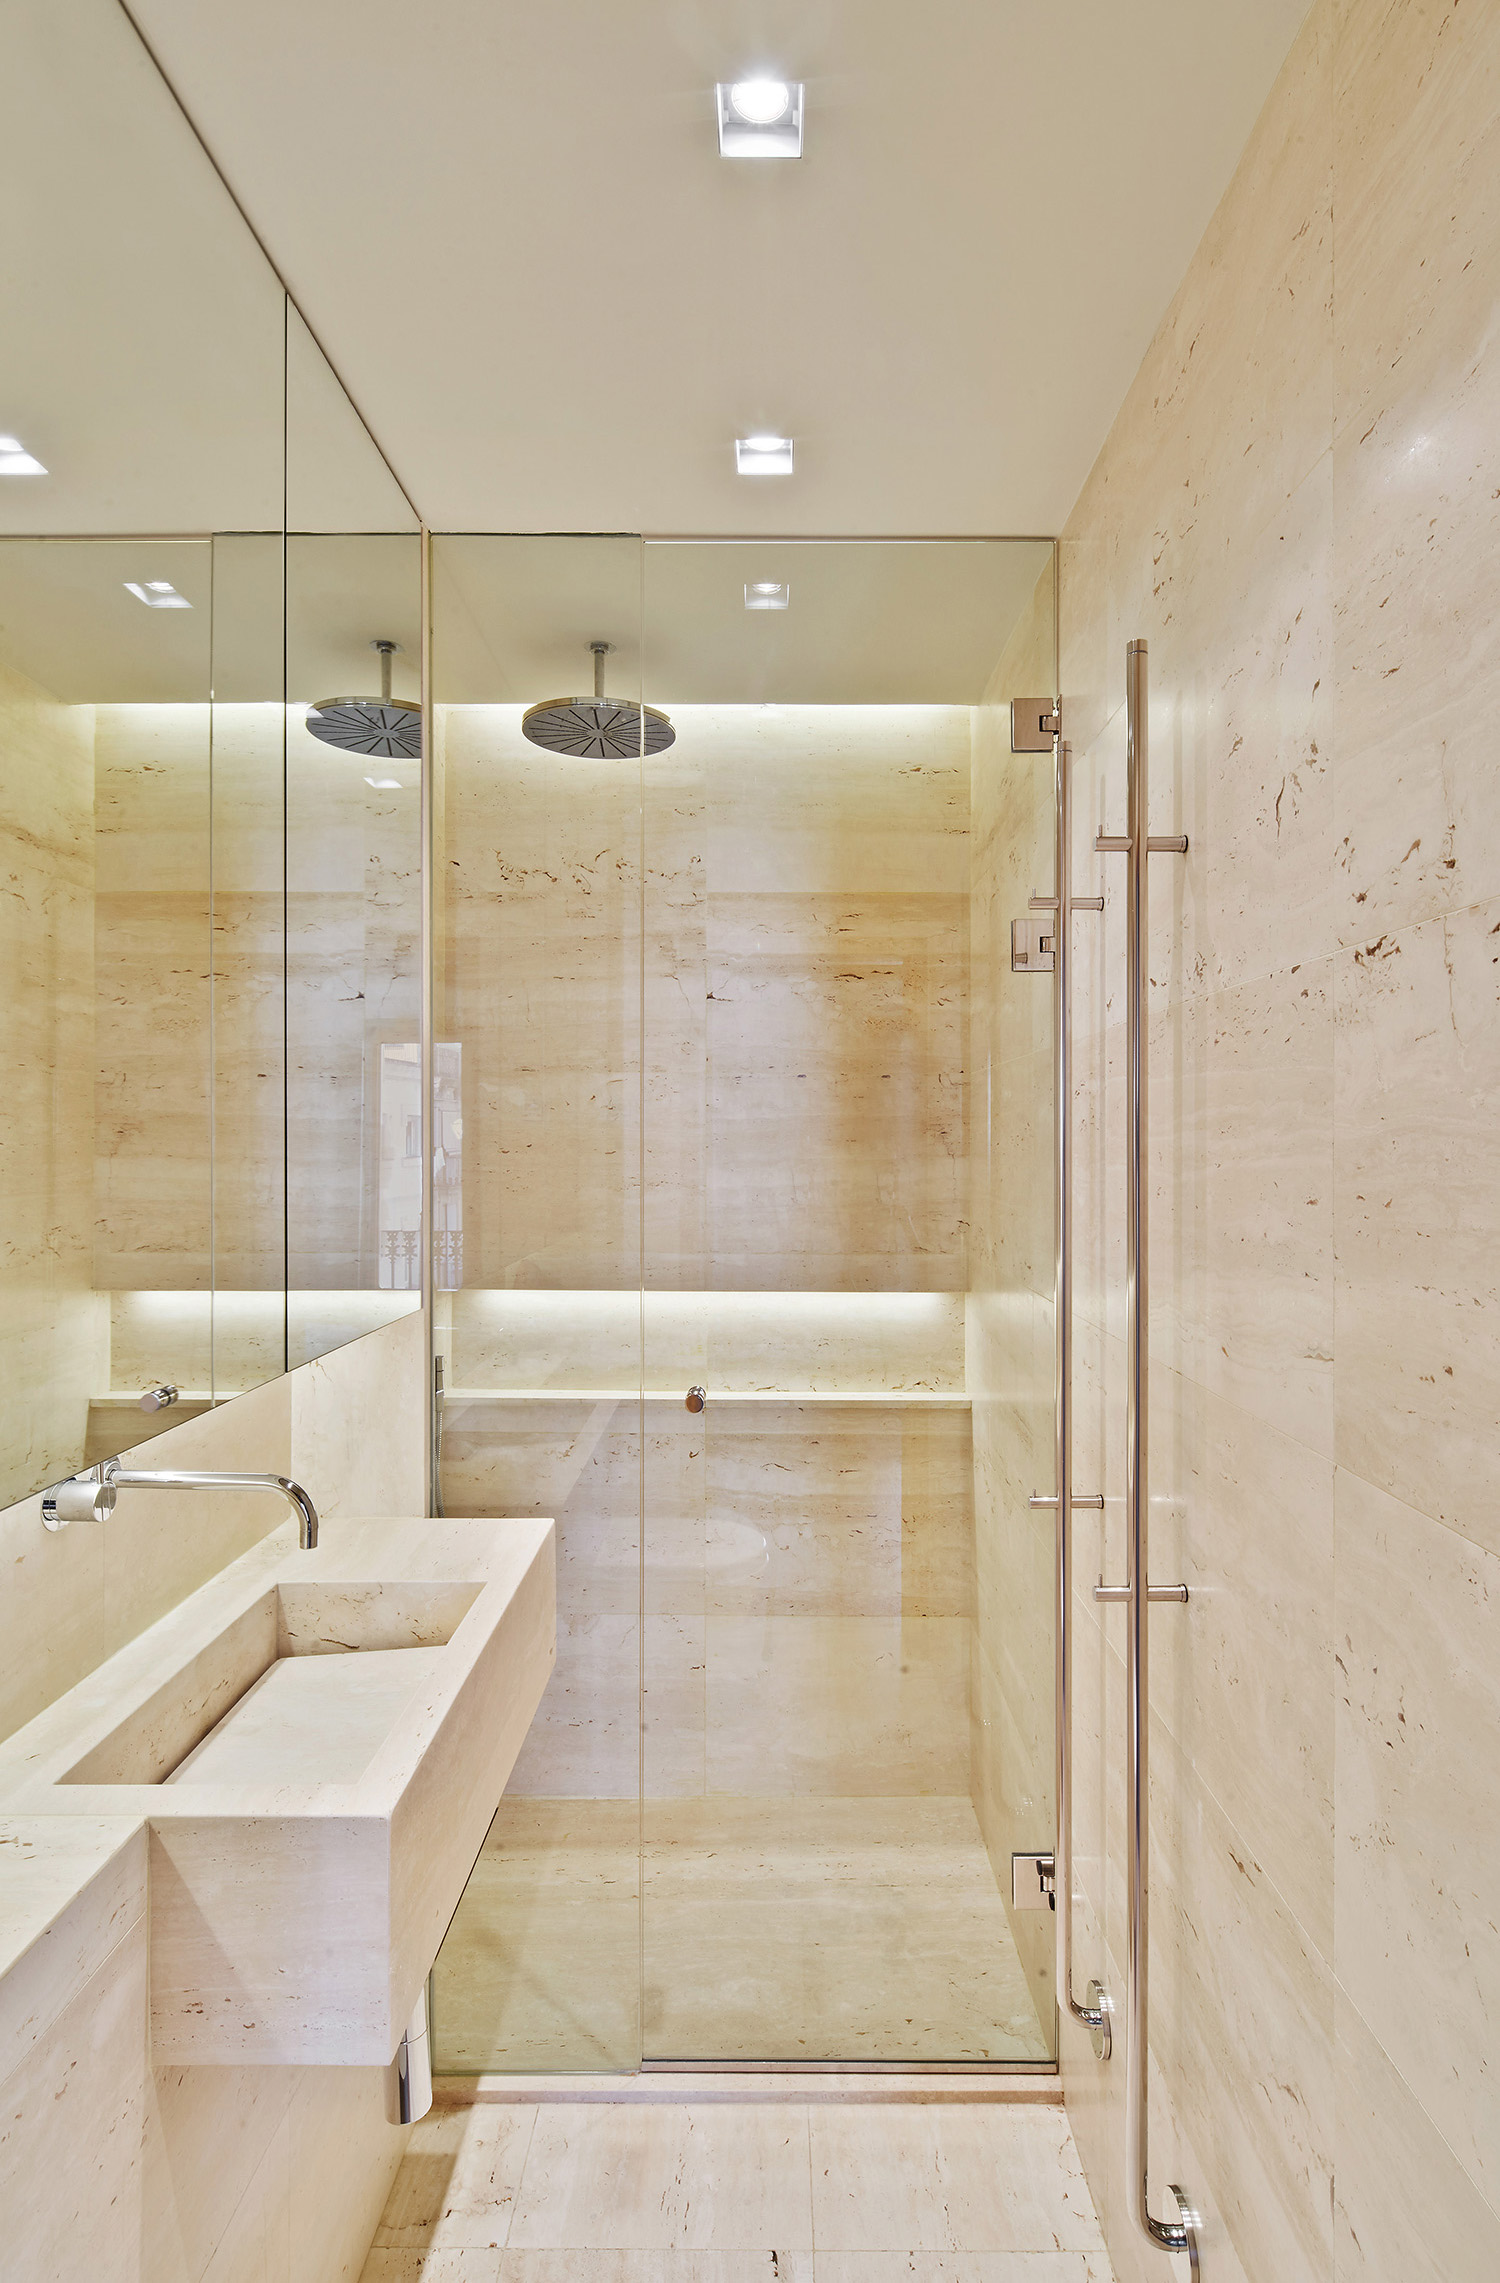 Barcelona apartment renovation with travertine stone bathroom and mirror cabinets